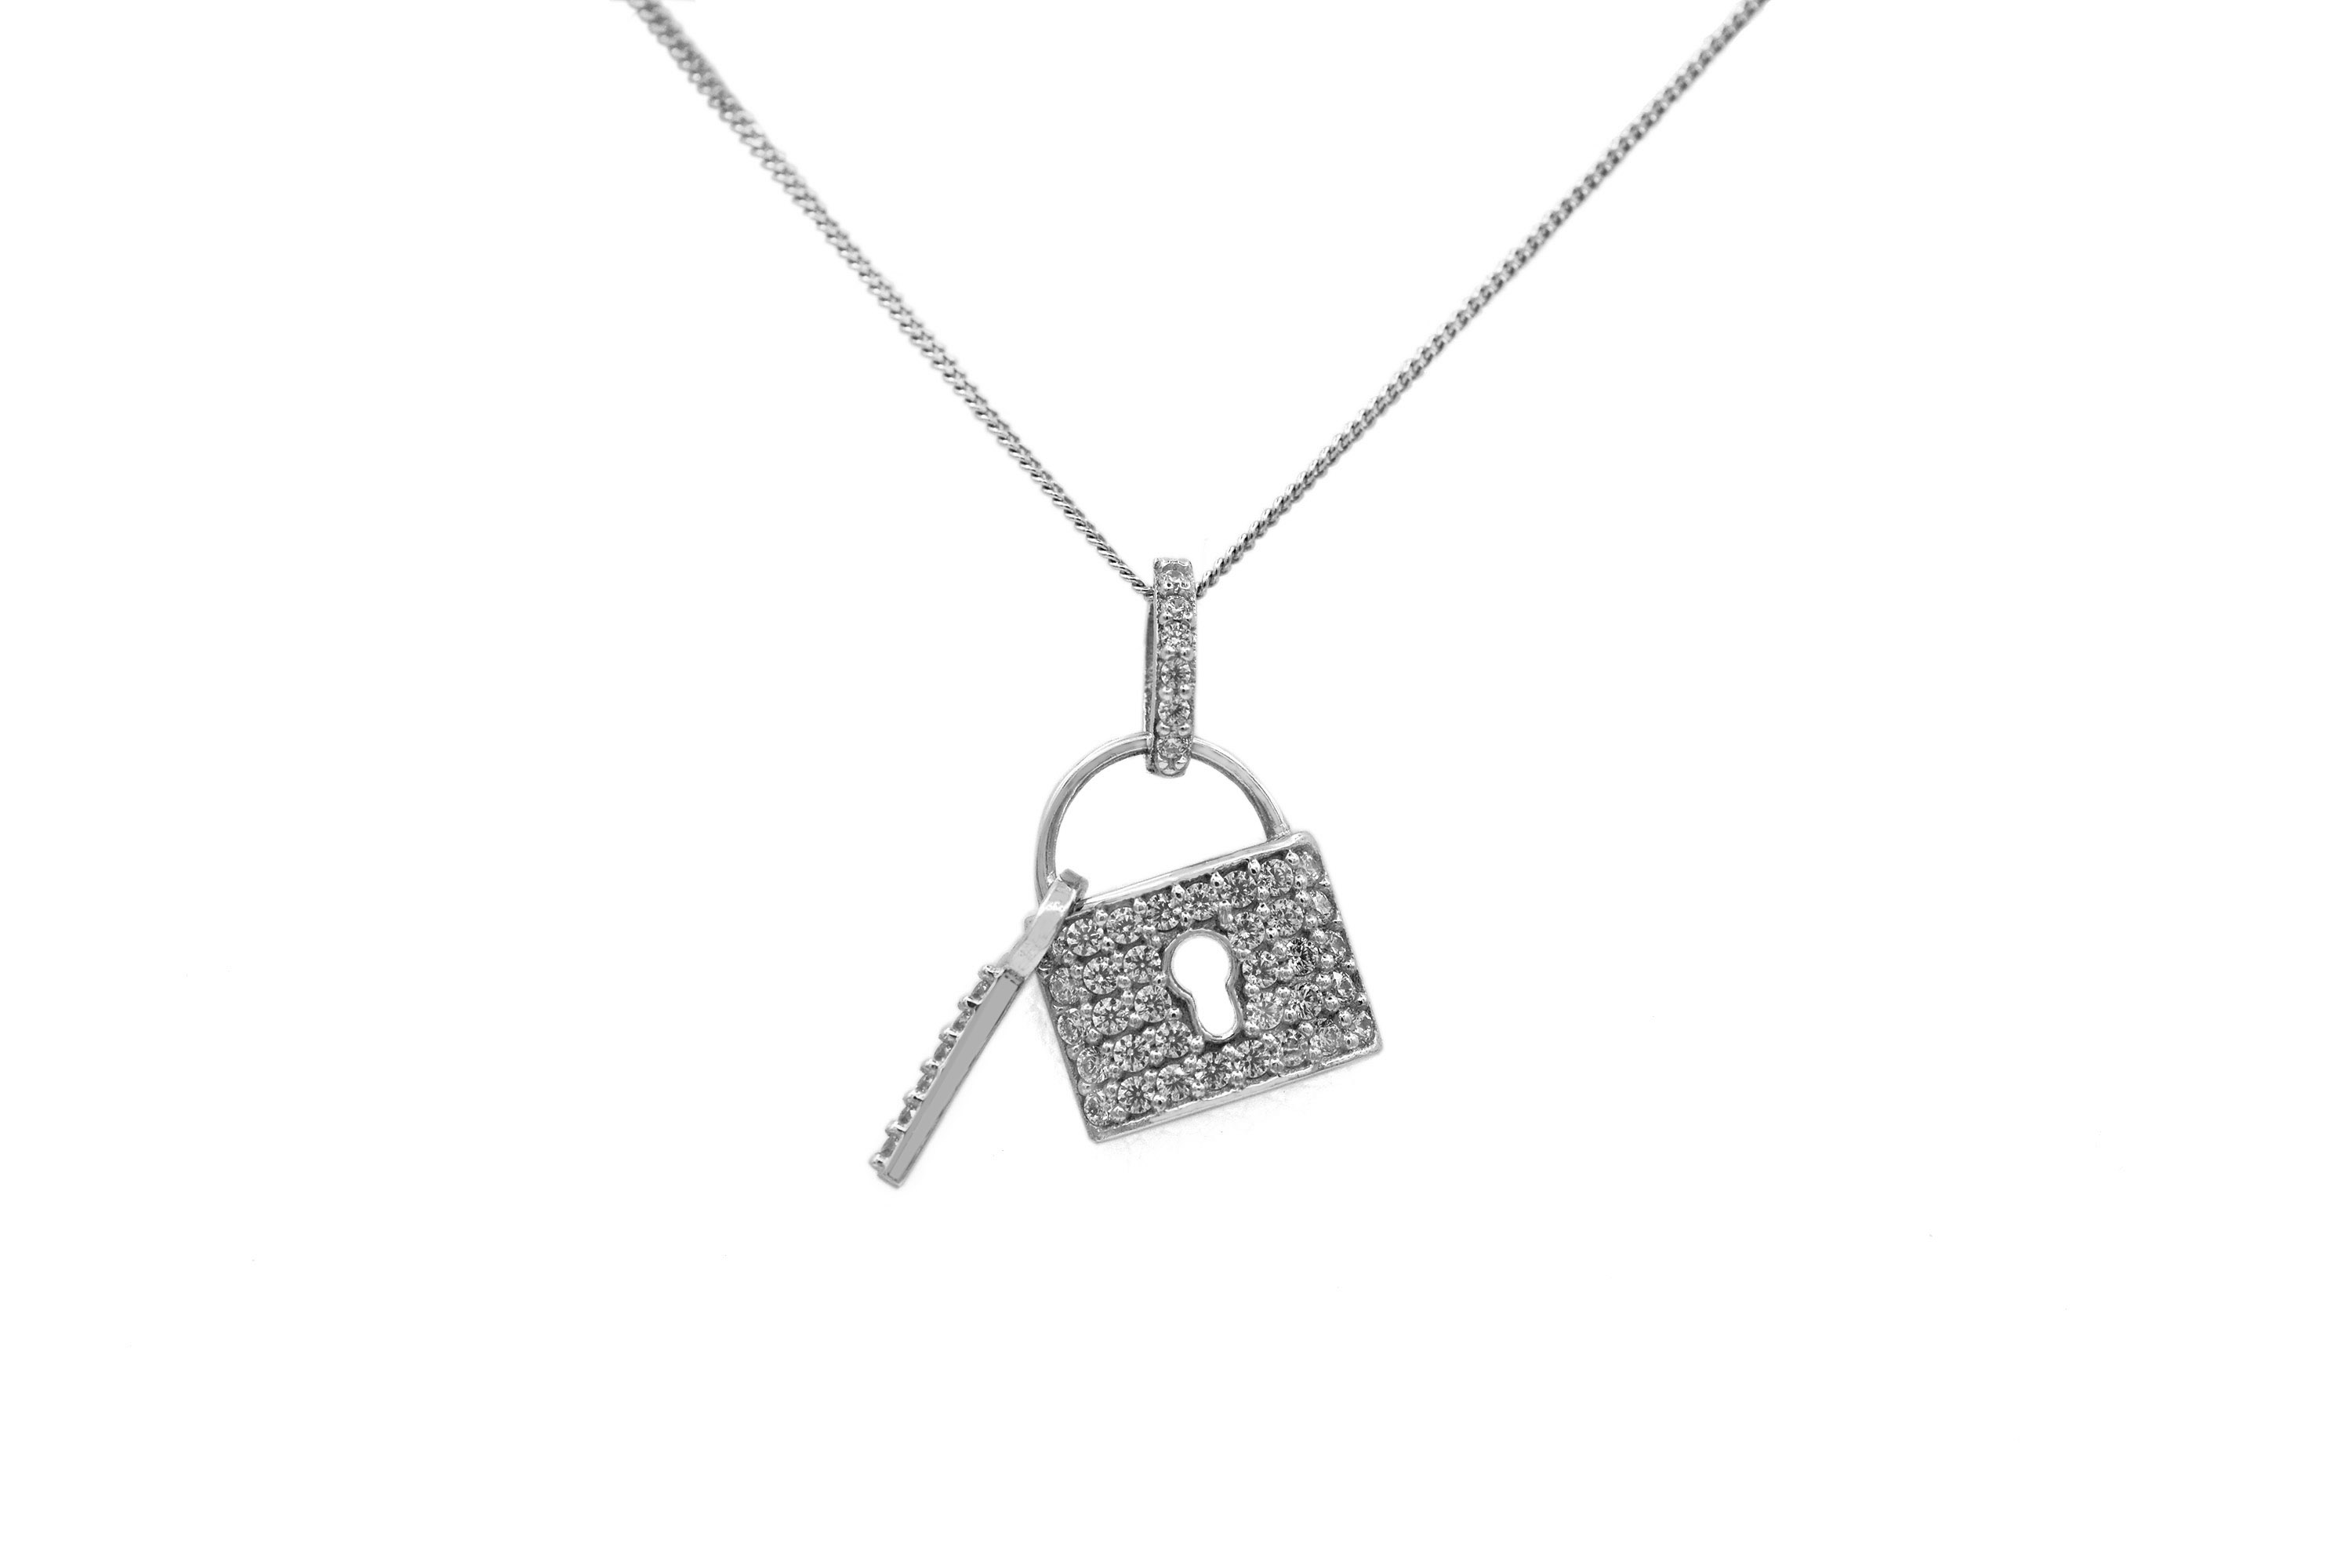 Silver lock and key necklace 2